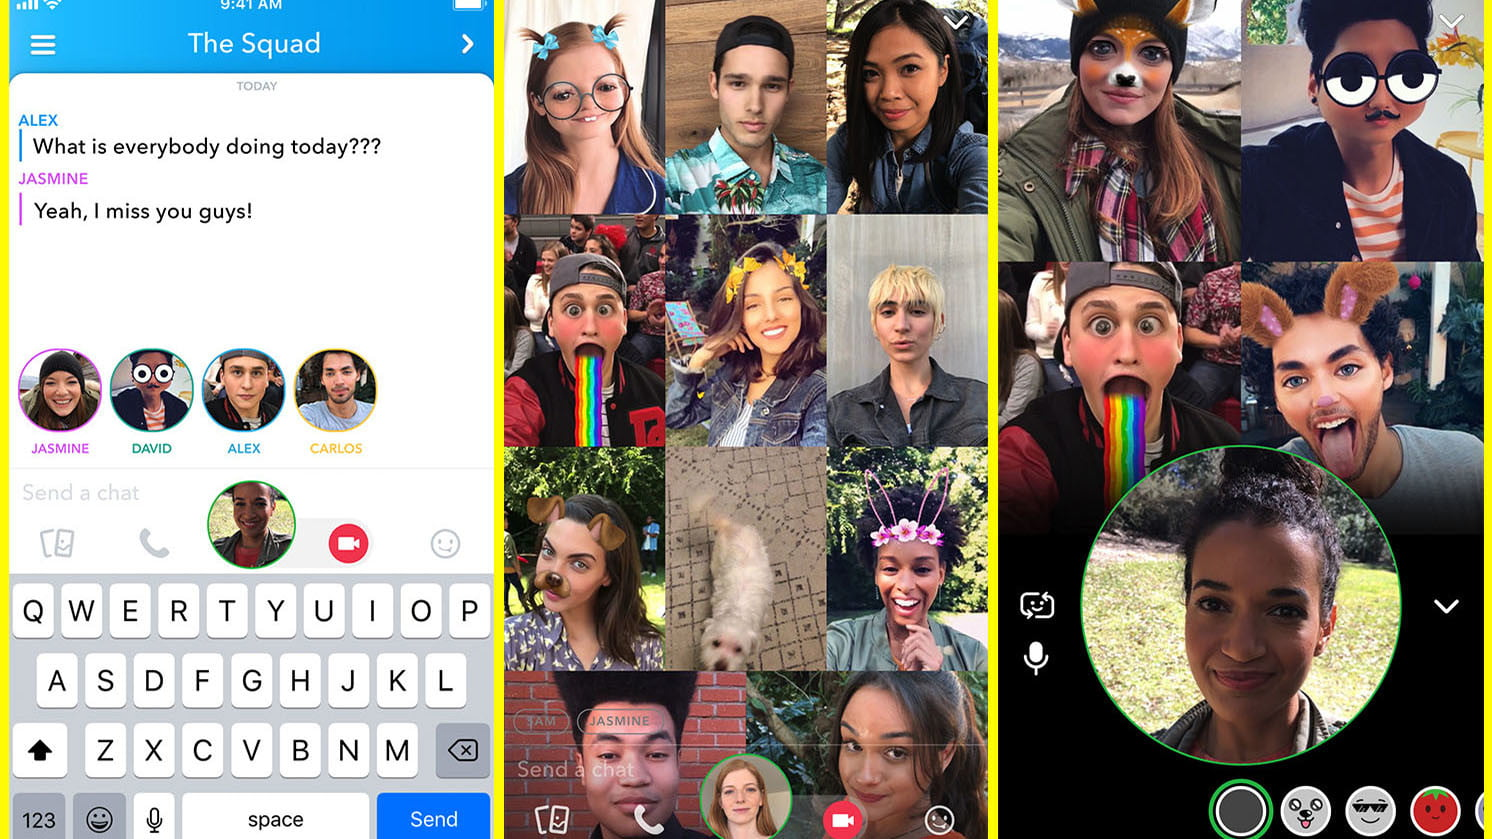 Hangout Via Video Chat With Large Groups With Snapchat's New Tool